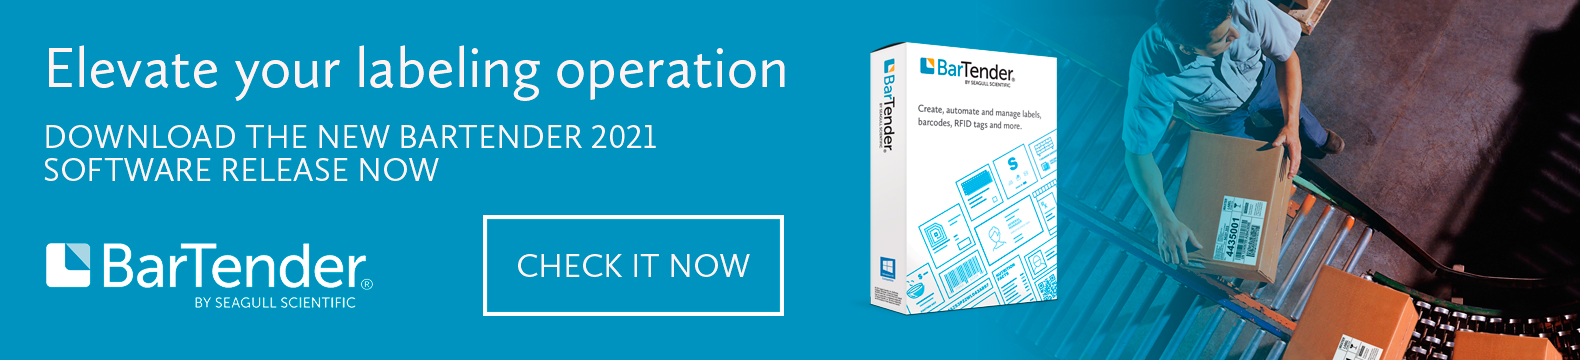 Download the new bartender 2021 software